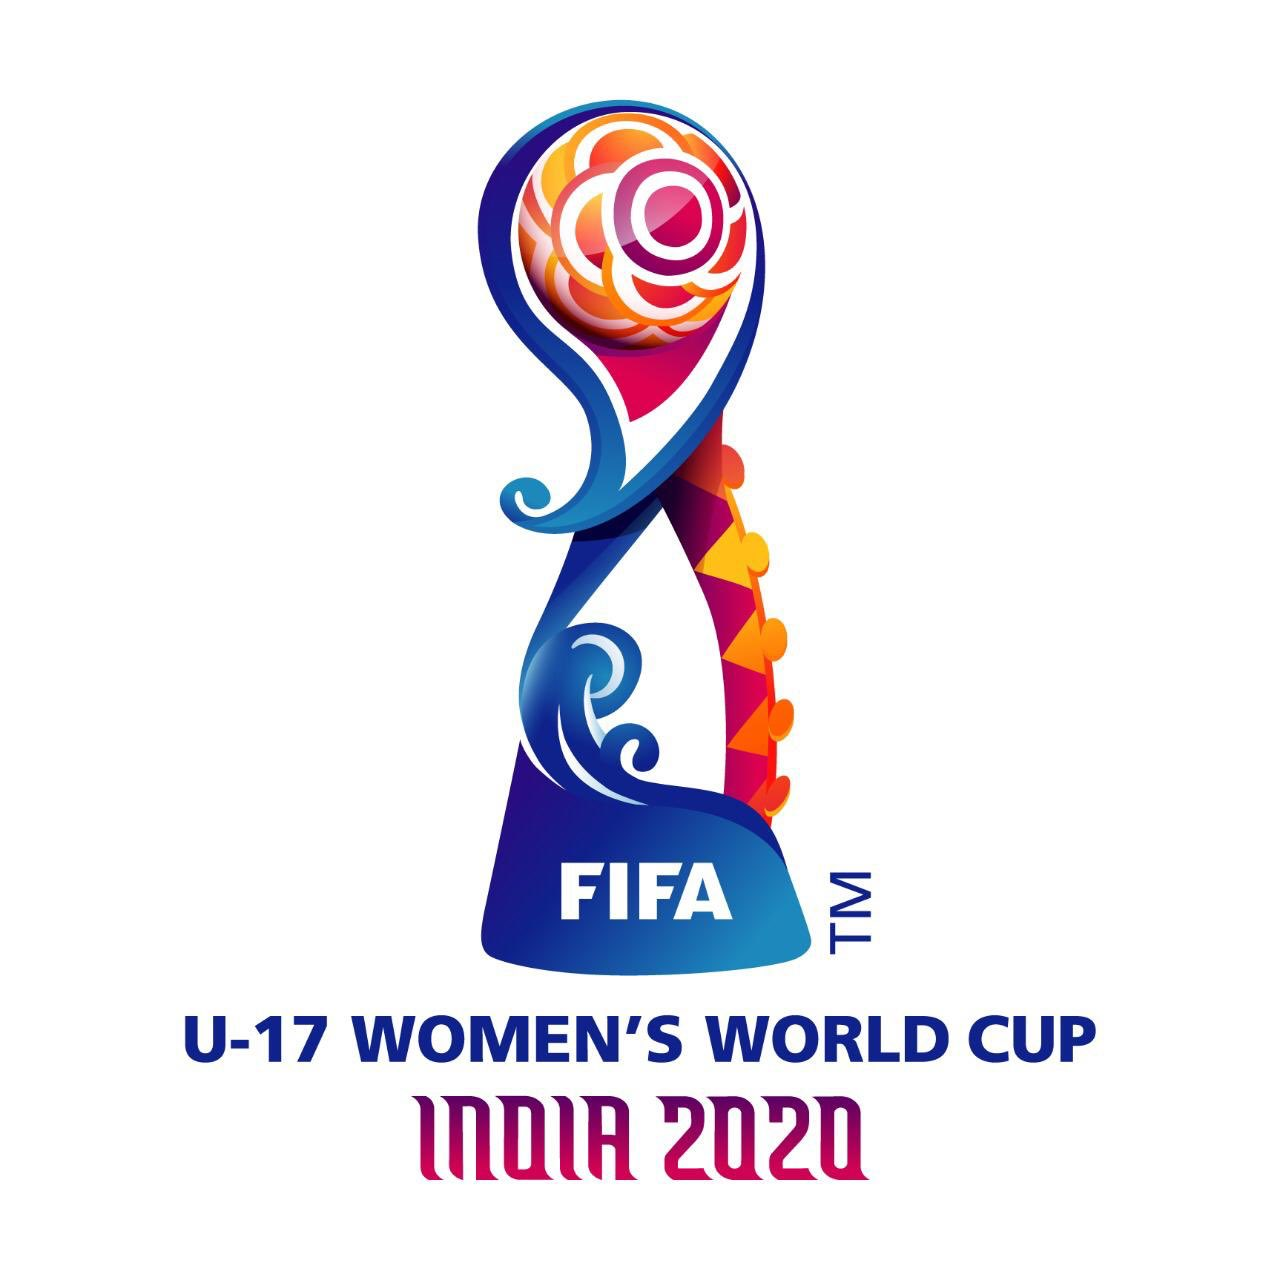 FIFA U17 Women's World Cup 2020